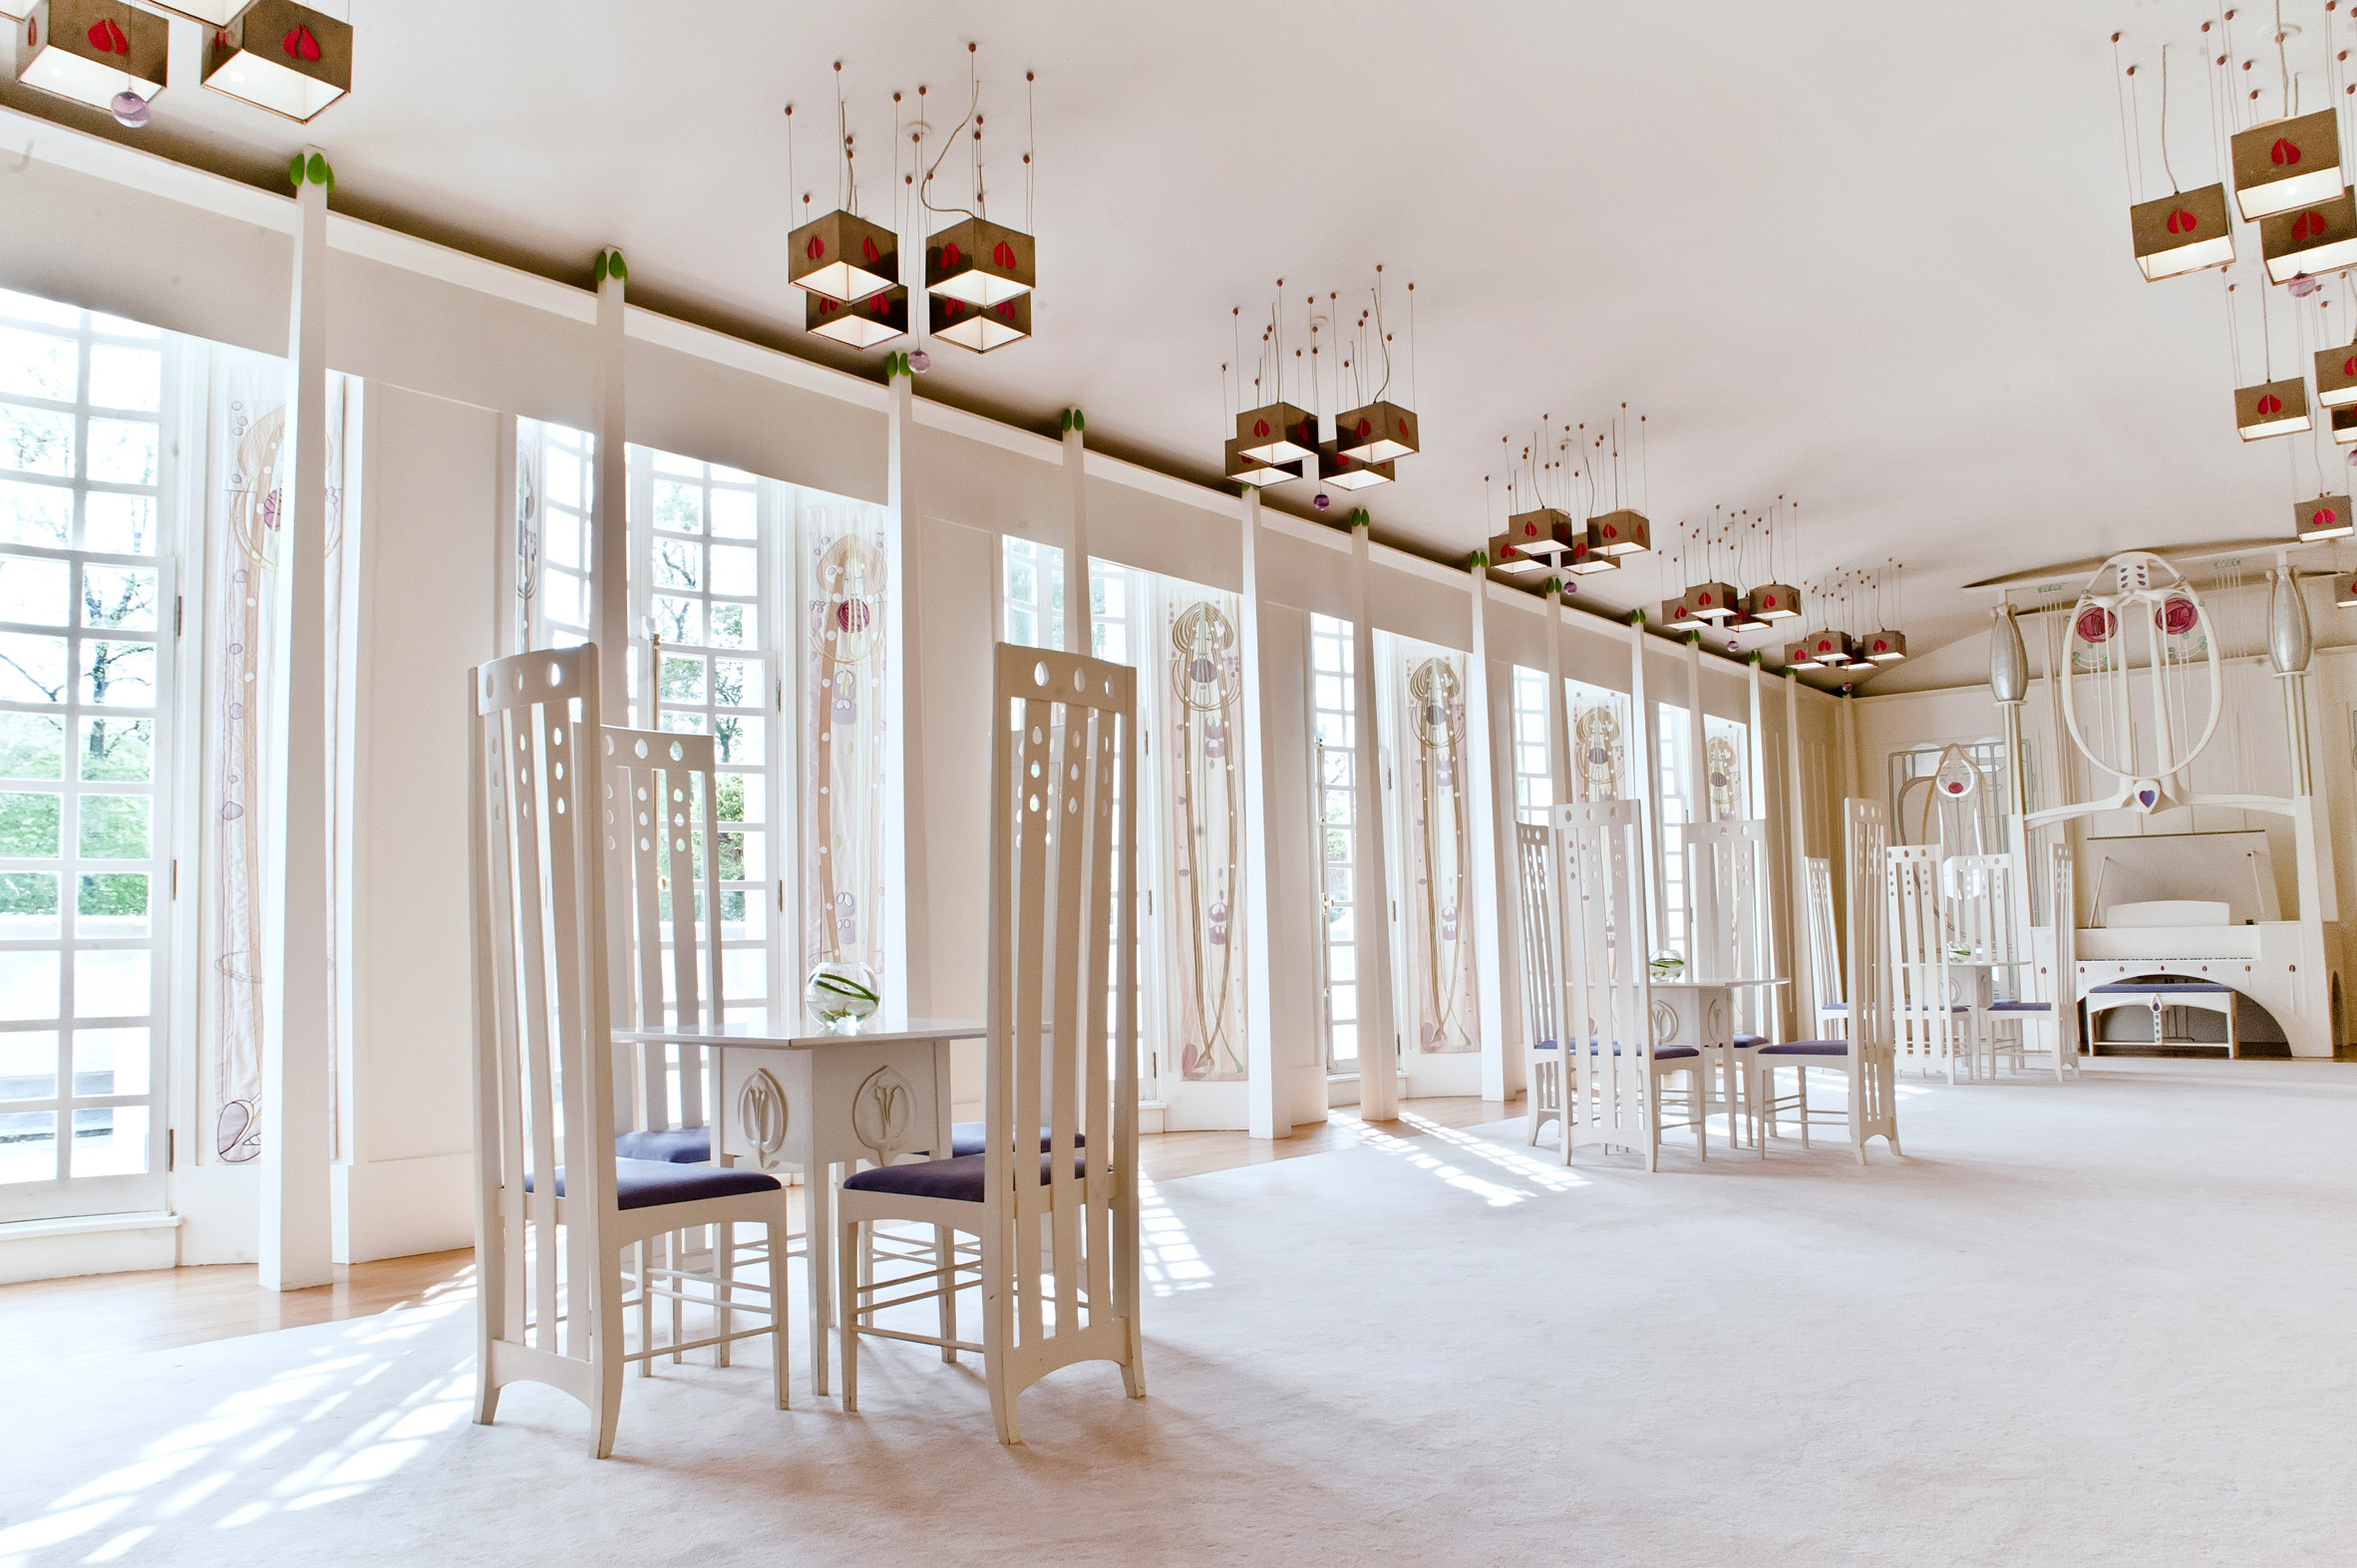 House For An Art Lover Was Built 60 Years After Charles Rennie Mackintosh S